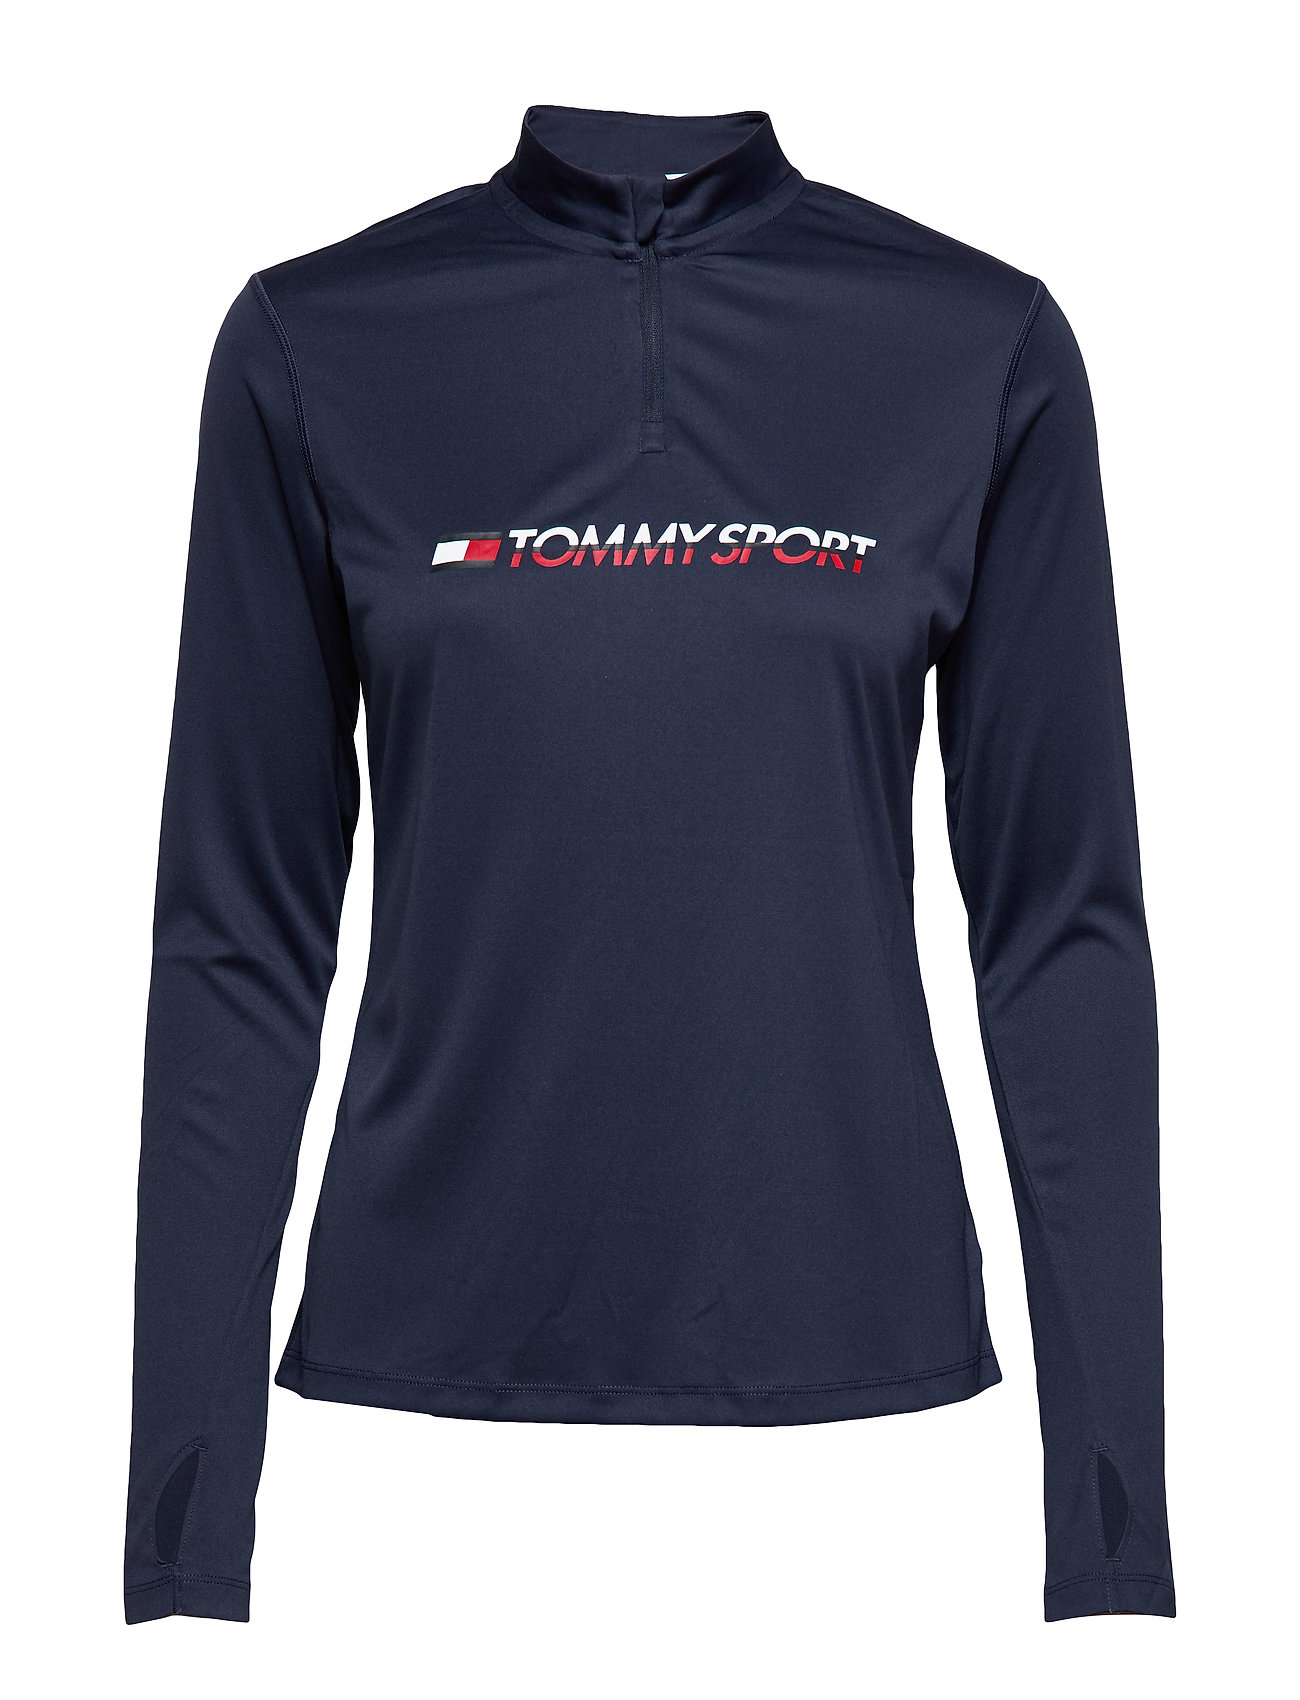 Image of 1/4 Zip Base Layer T Base Layer Tops Blå Tommy Sport (3274622715)